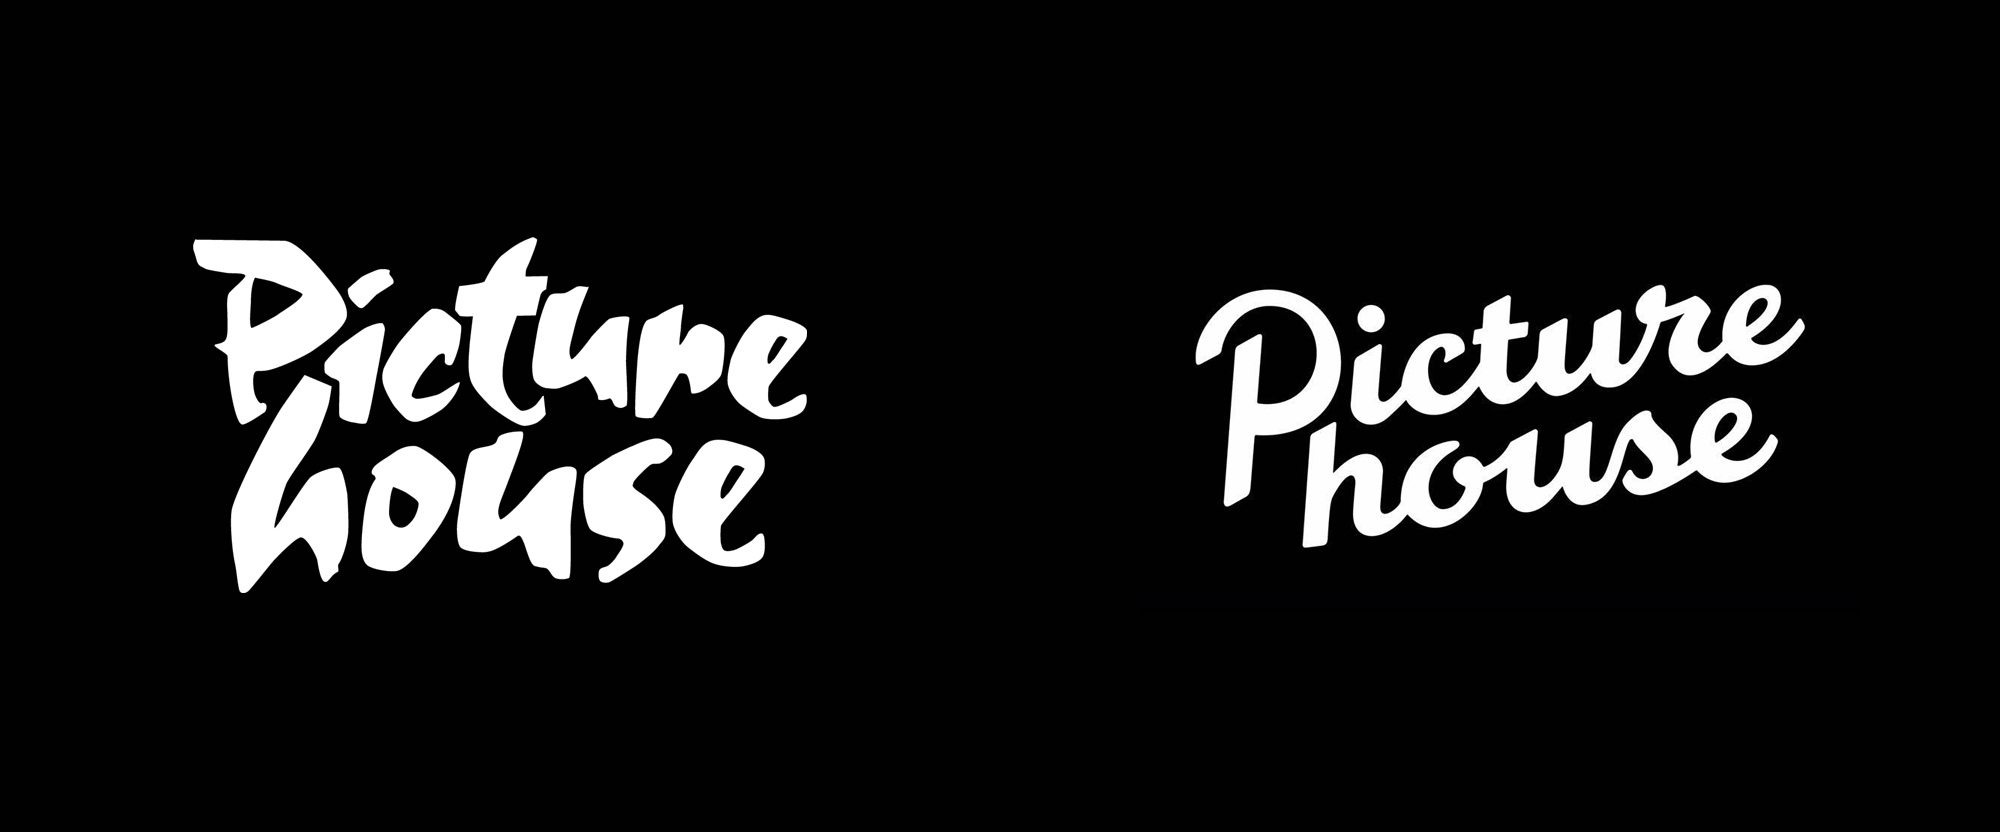 New Logo for Picturehouse